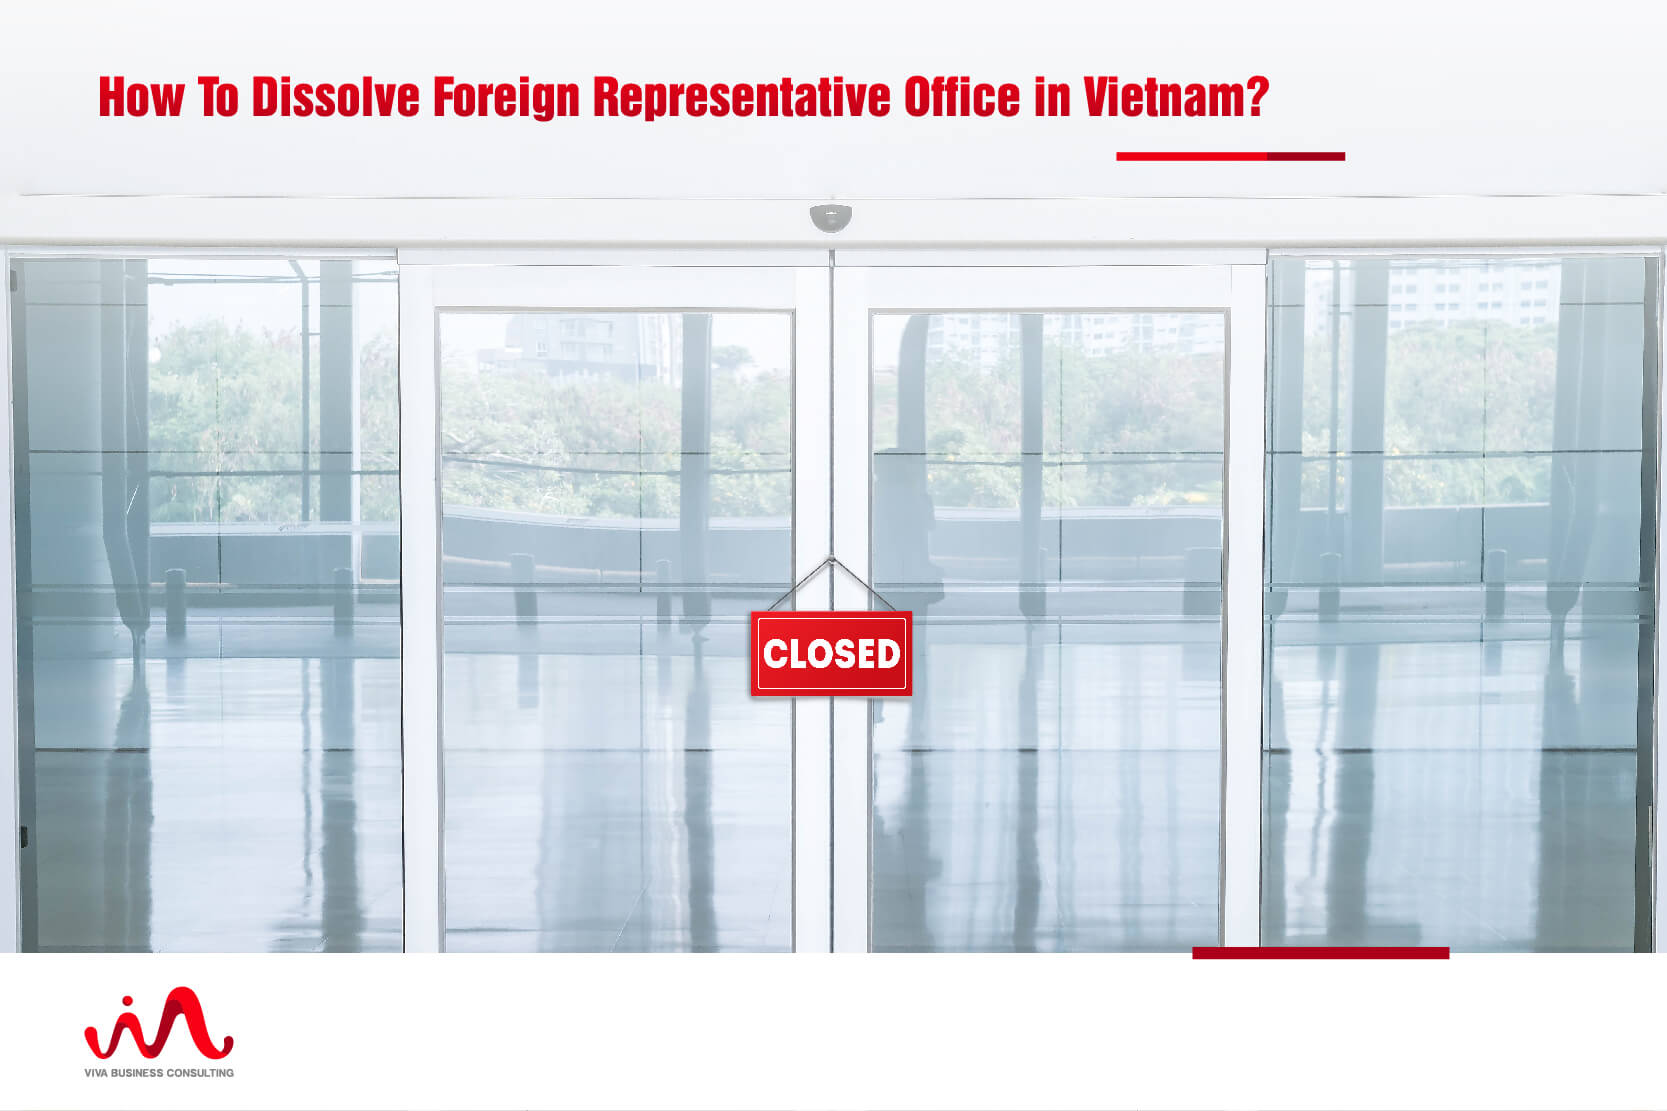 Dissolve Foreign Representative Office in Vietnam